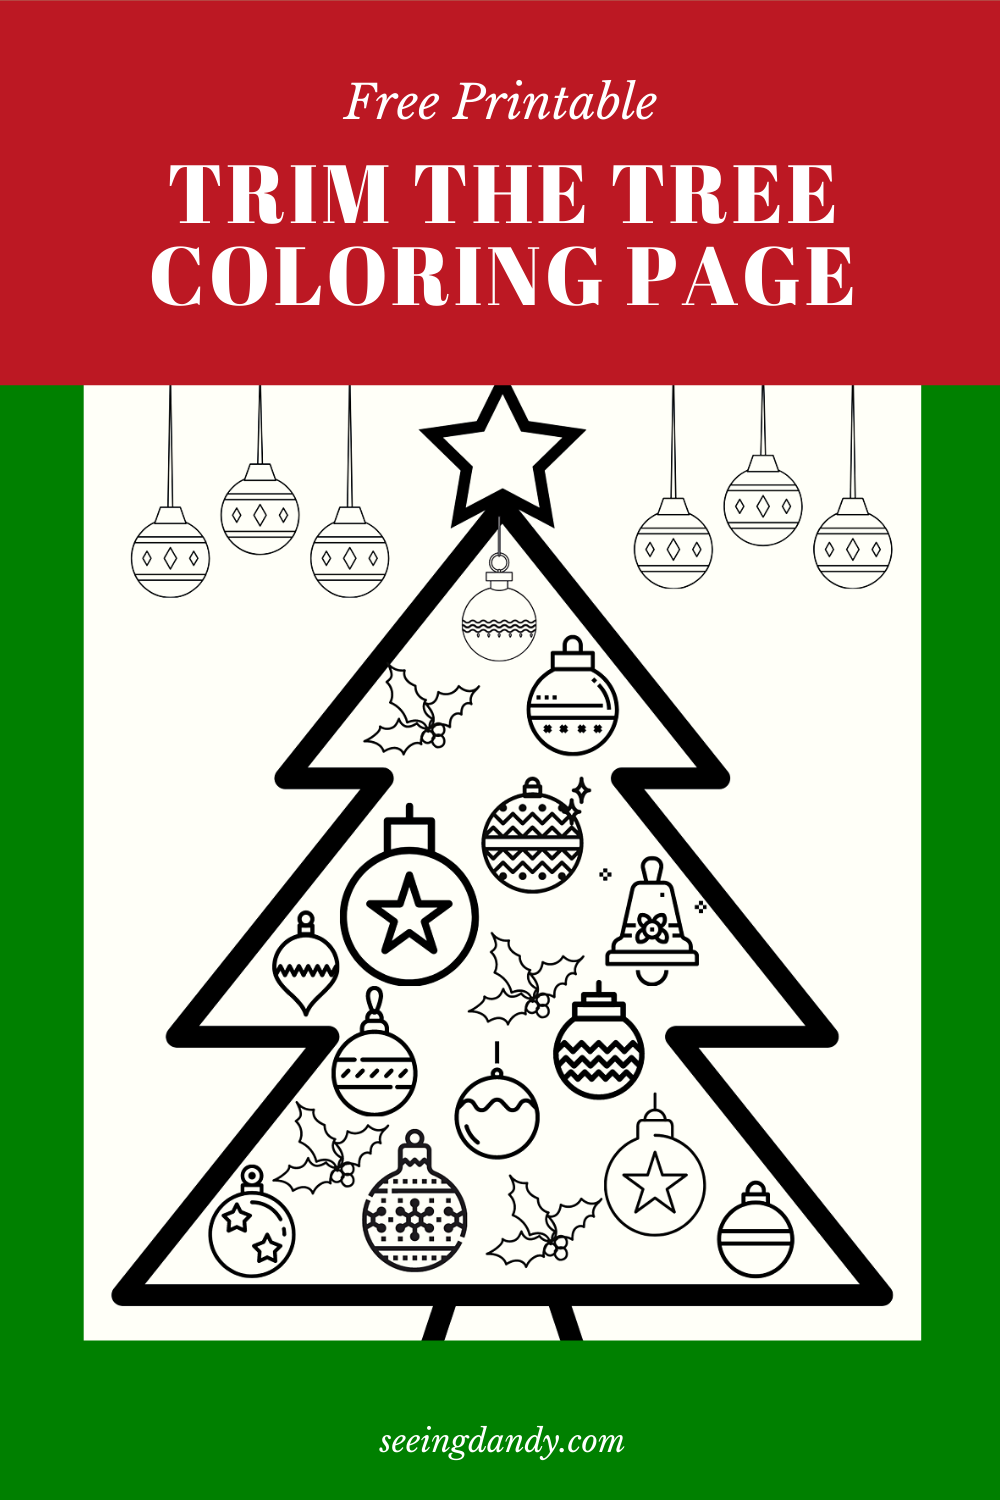 kids christmas coloring page, trim the tree, free printable, coloring sheet, kids crafts, school christmas party, holiday fun, christmas DIY